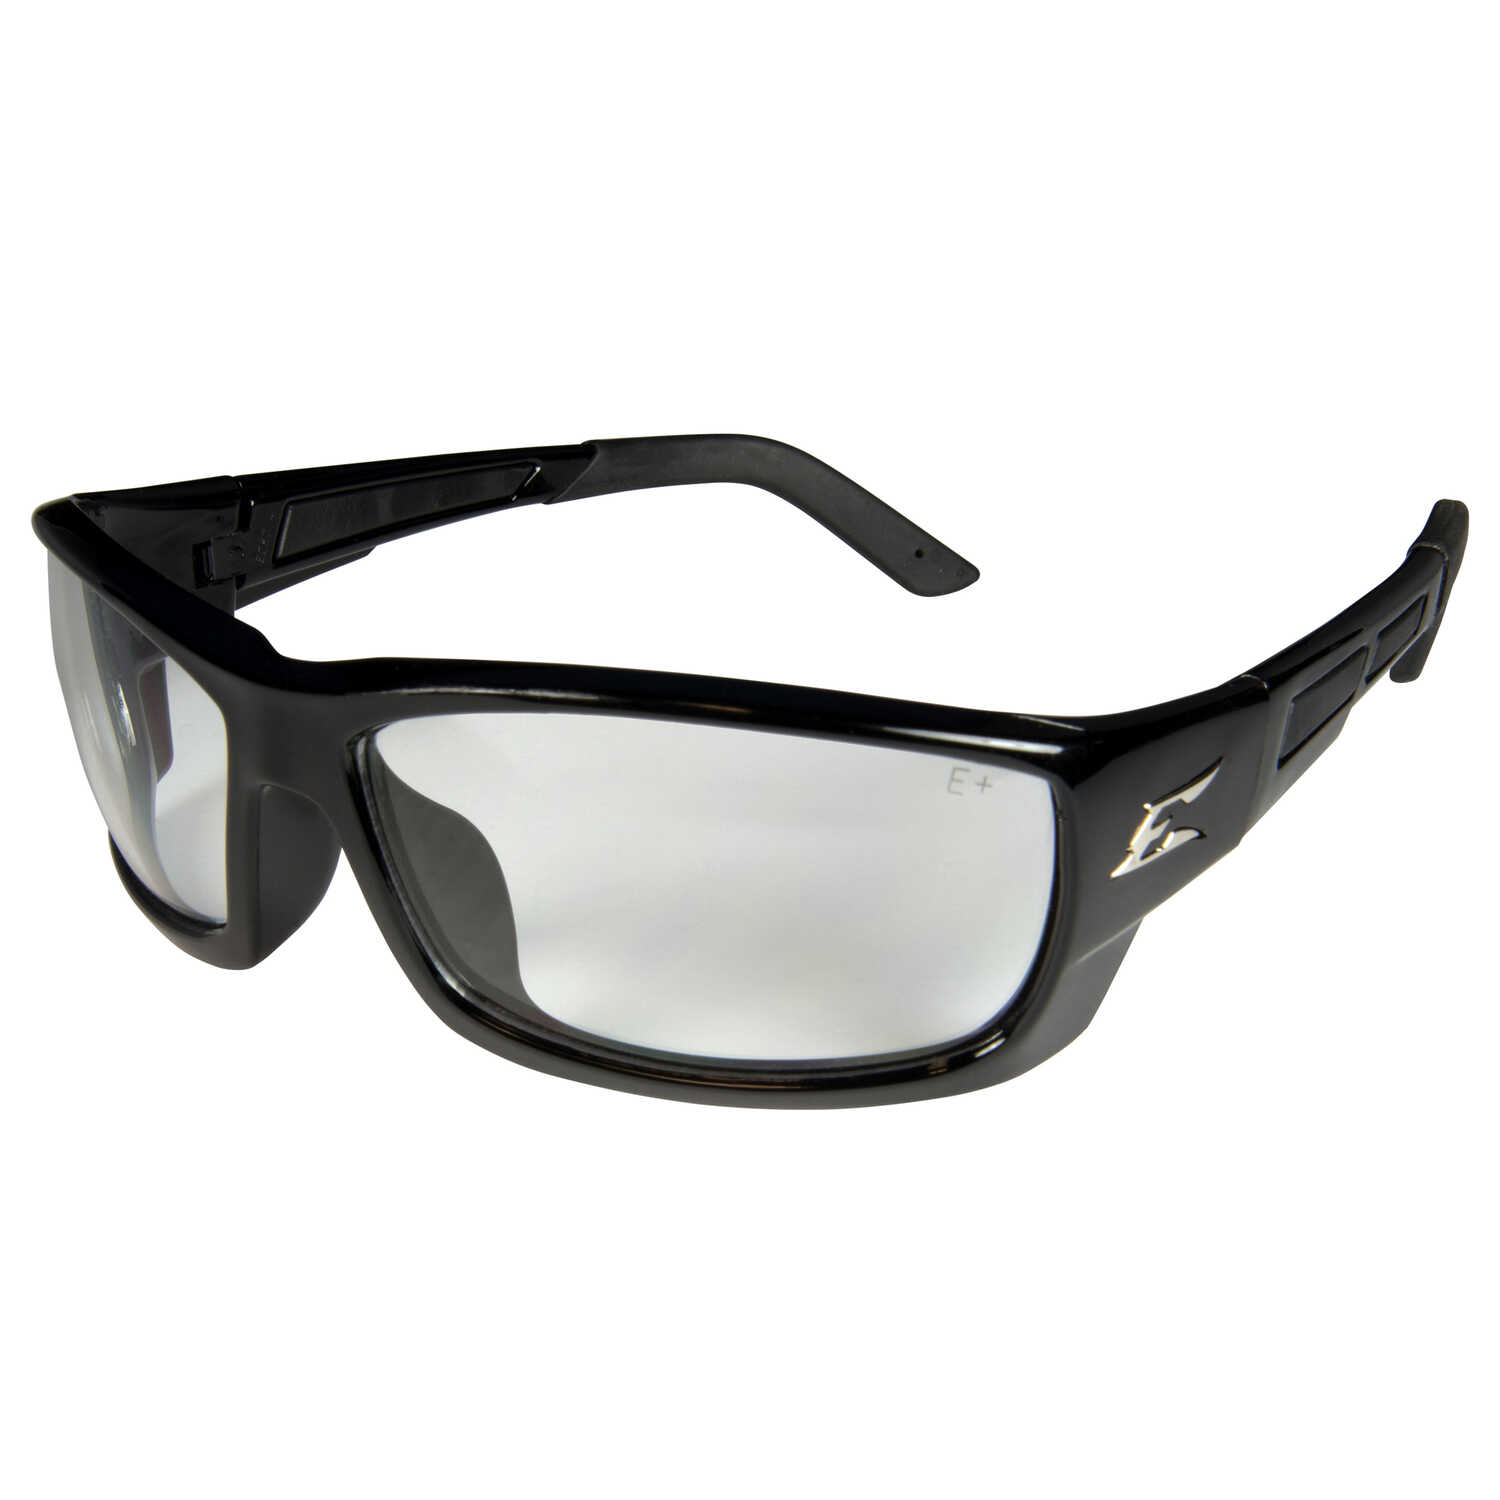 Edge Eyewear  Mazeno  Slim Fit  Safety Glasses  Clear Lens Black Frame 1 pk